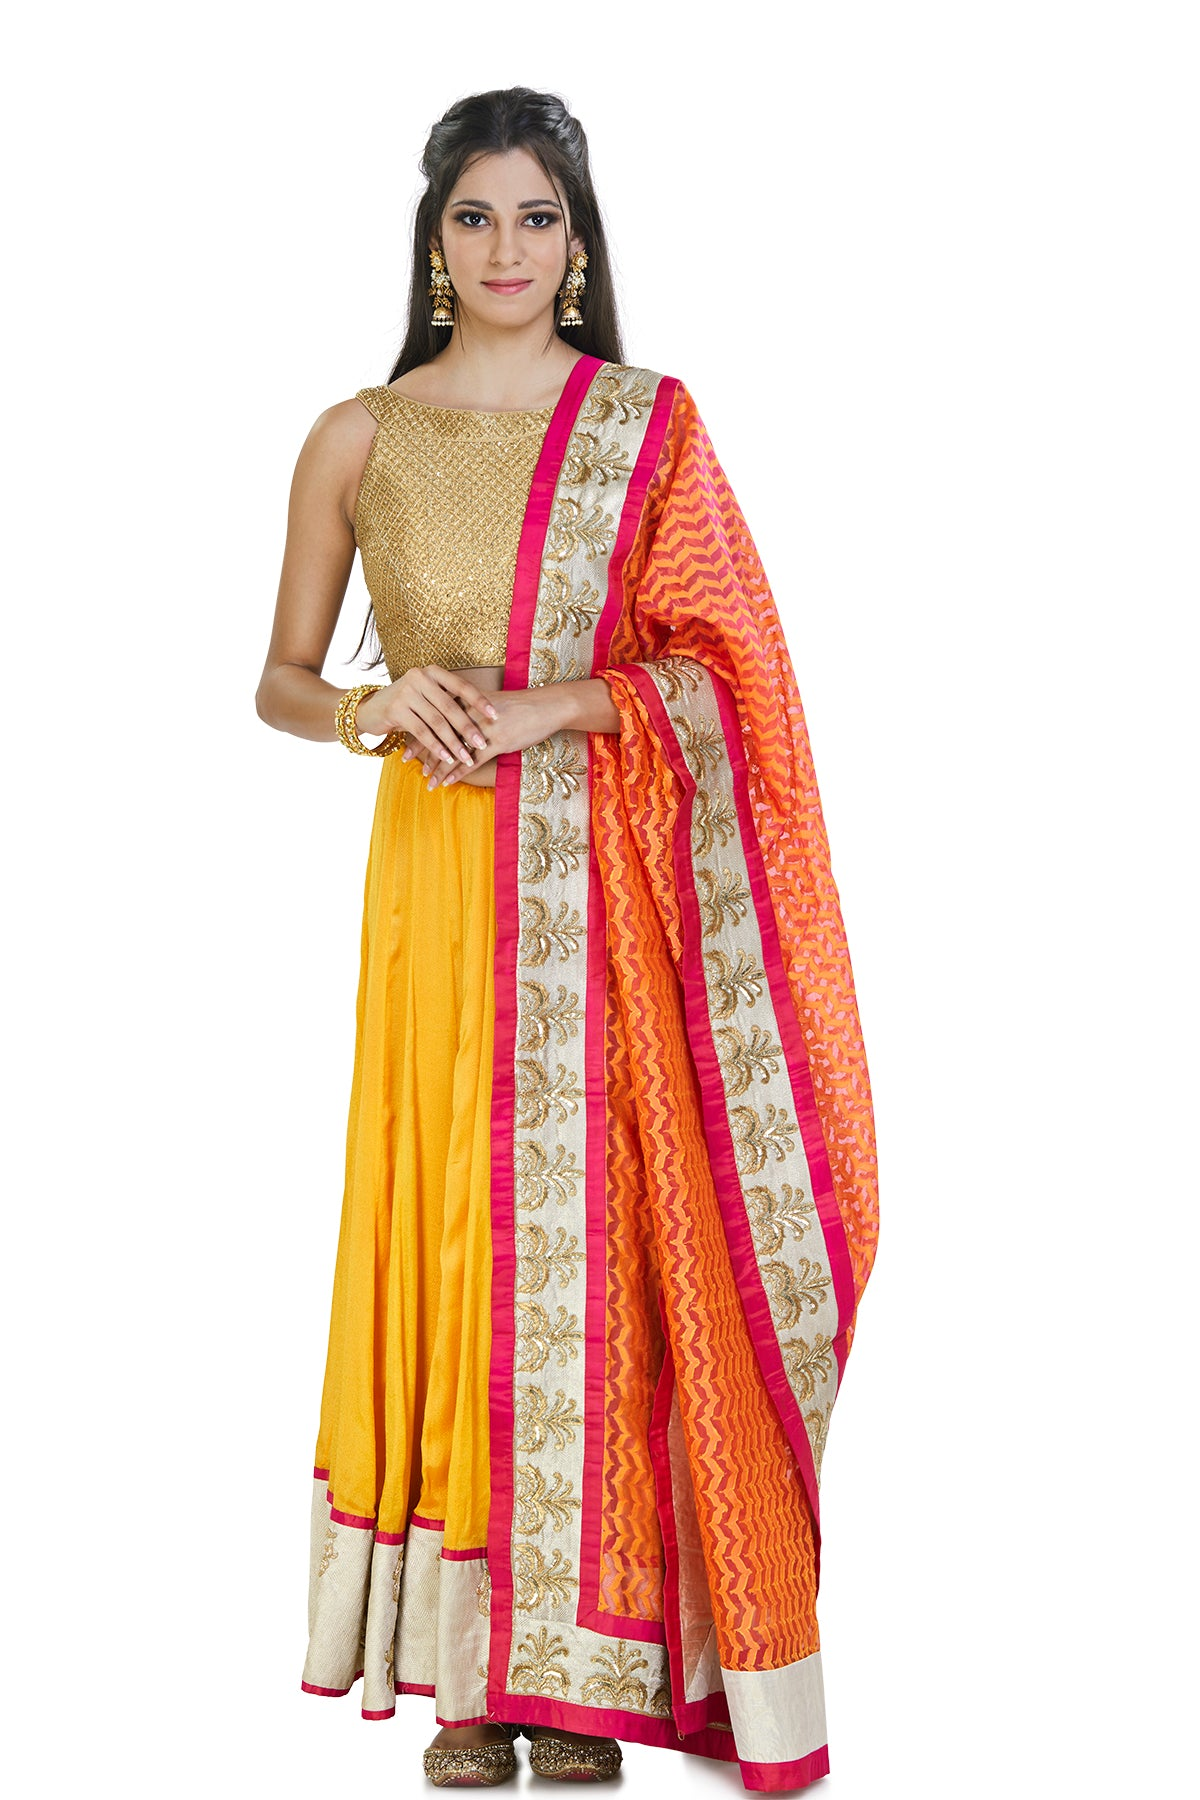 Vibrant & versatile, this saffron-colored silk, hand-embroidered skirt is complemented with a kardana embroidered fold blouse and pink chanderi dupatta.